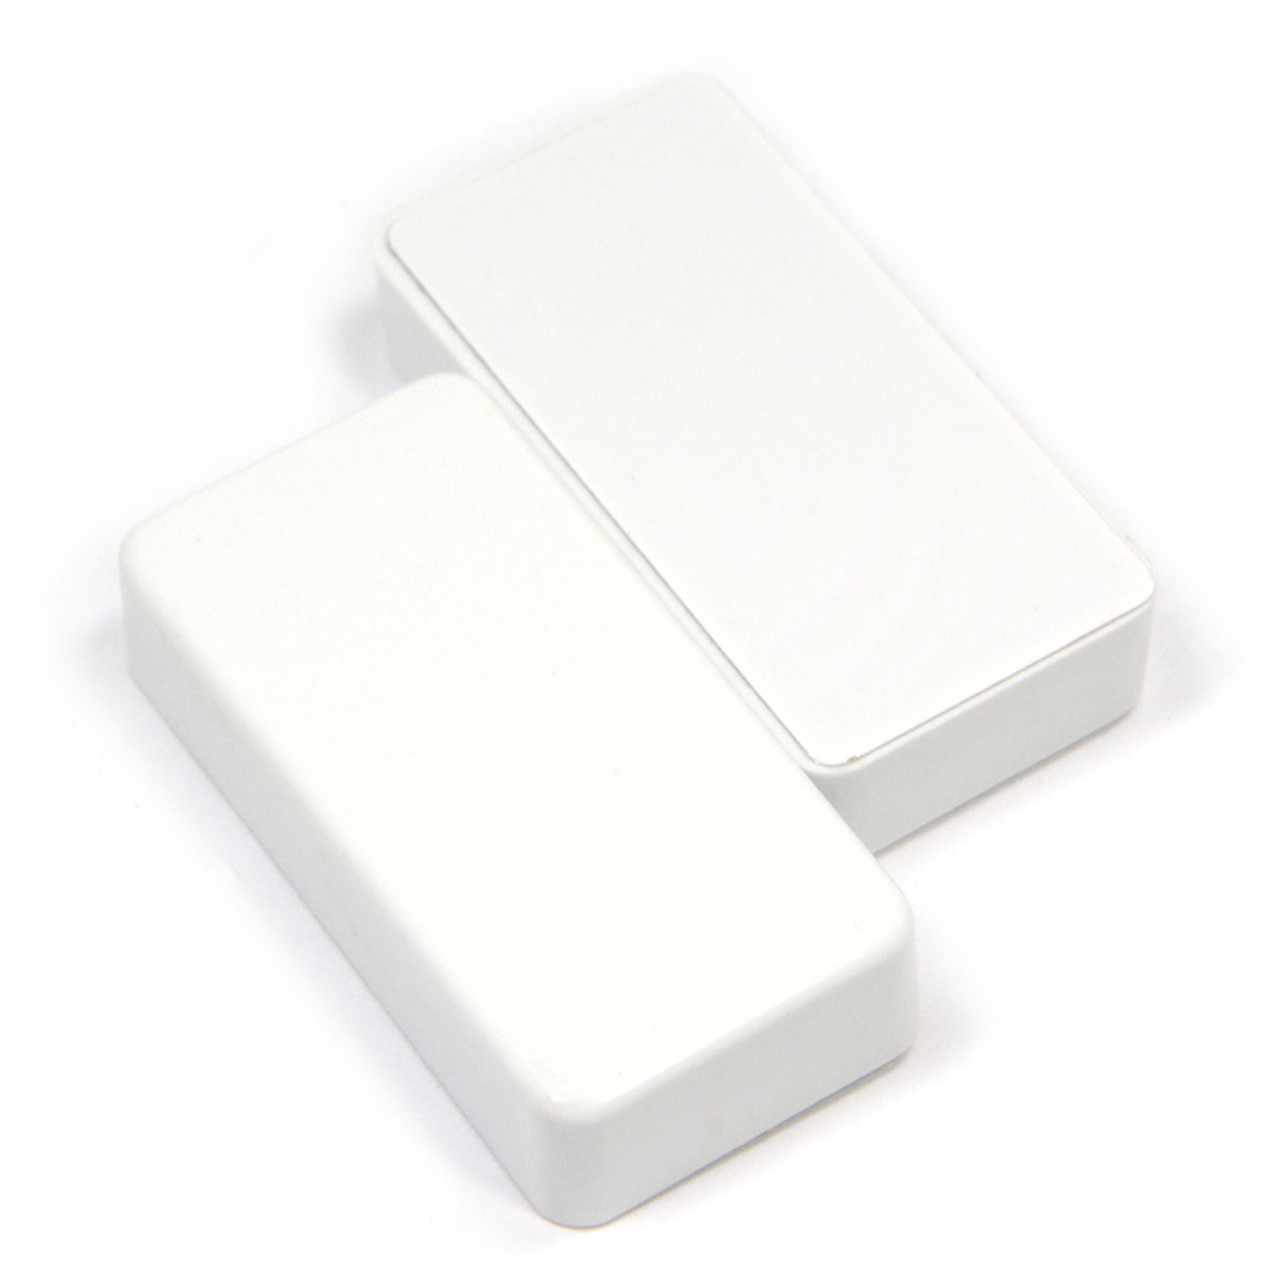 White Message Board Magnets